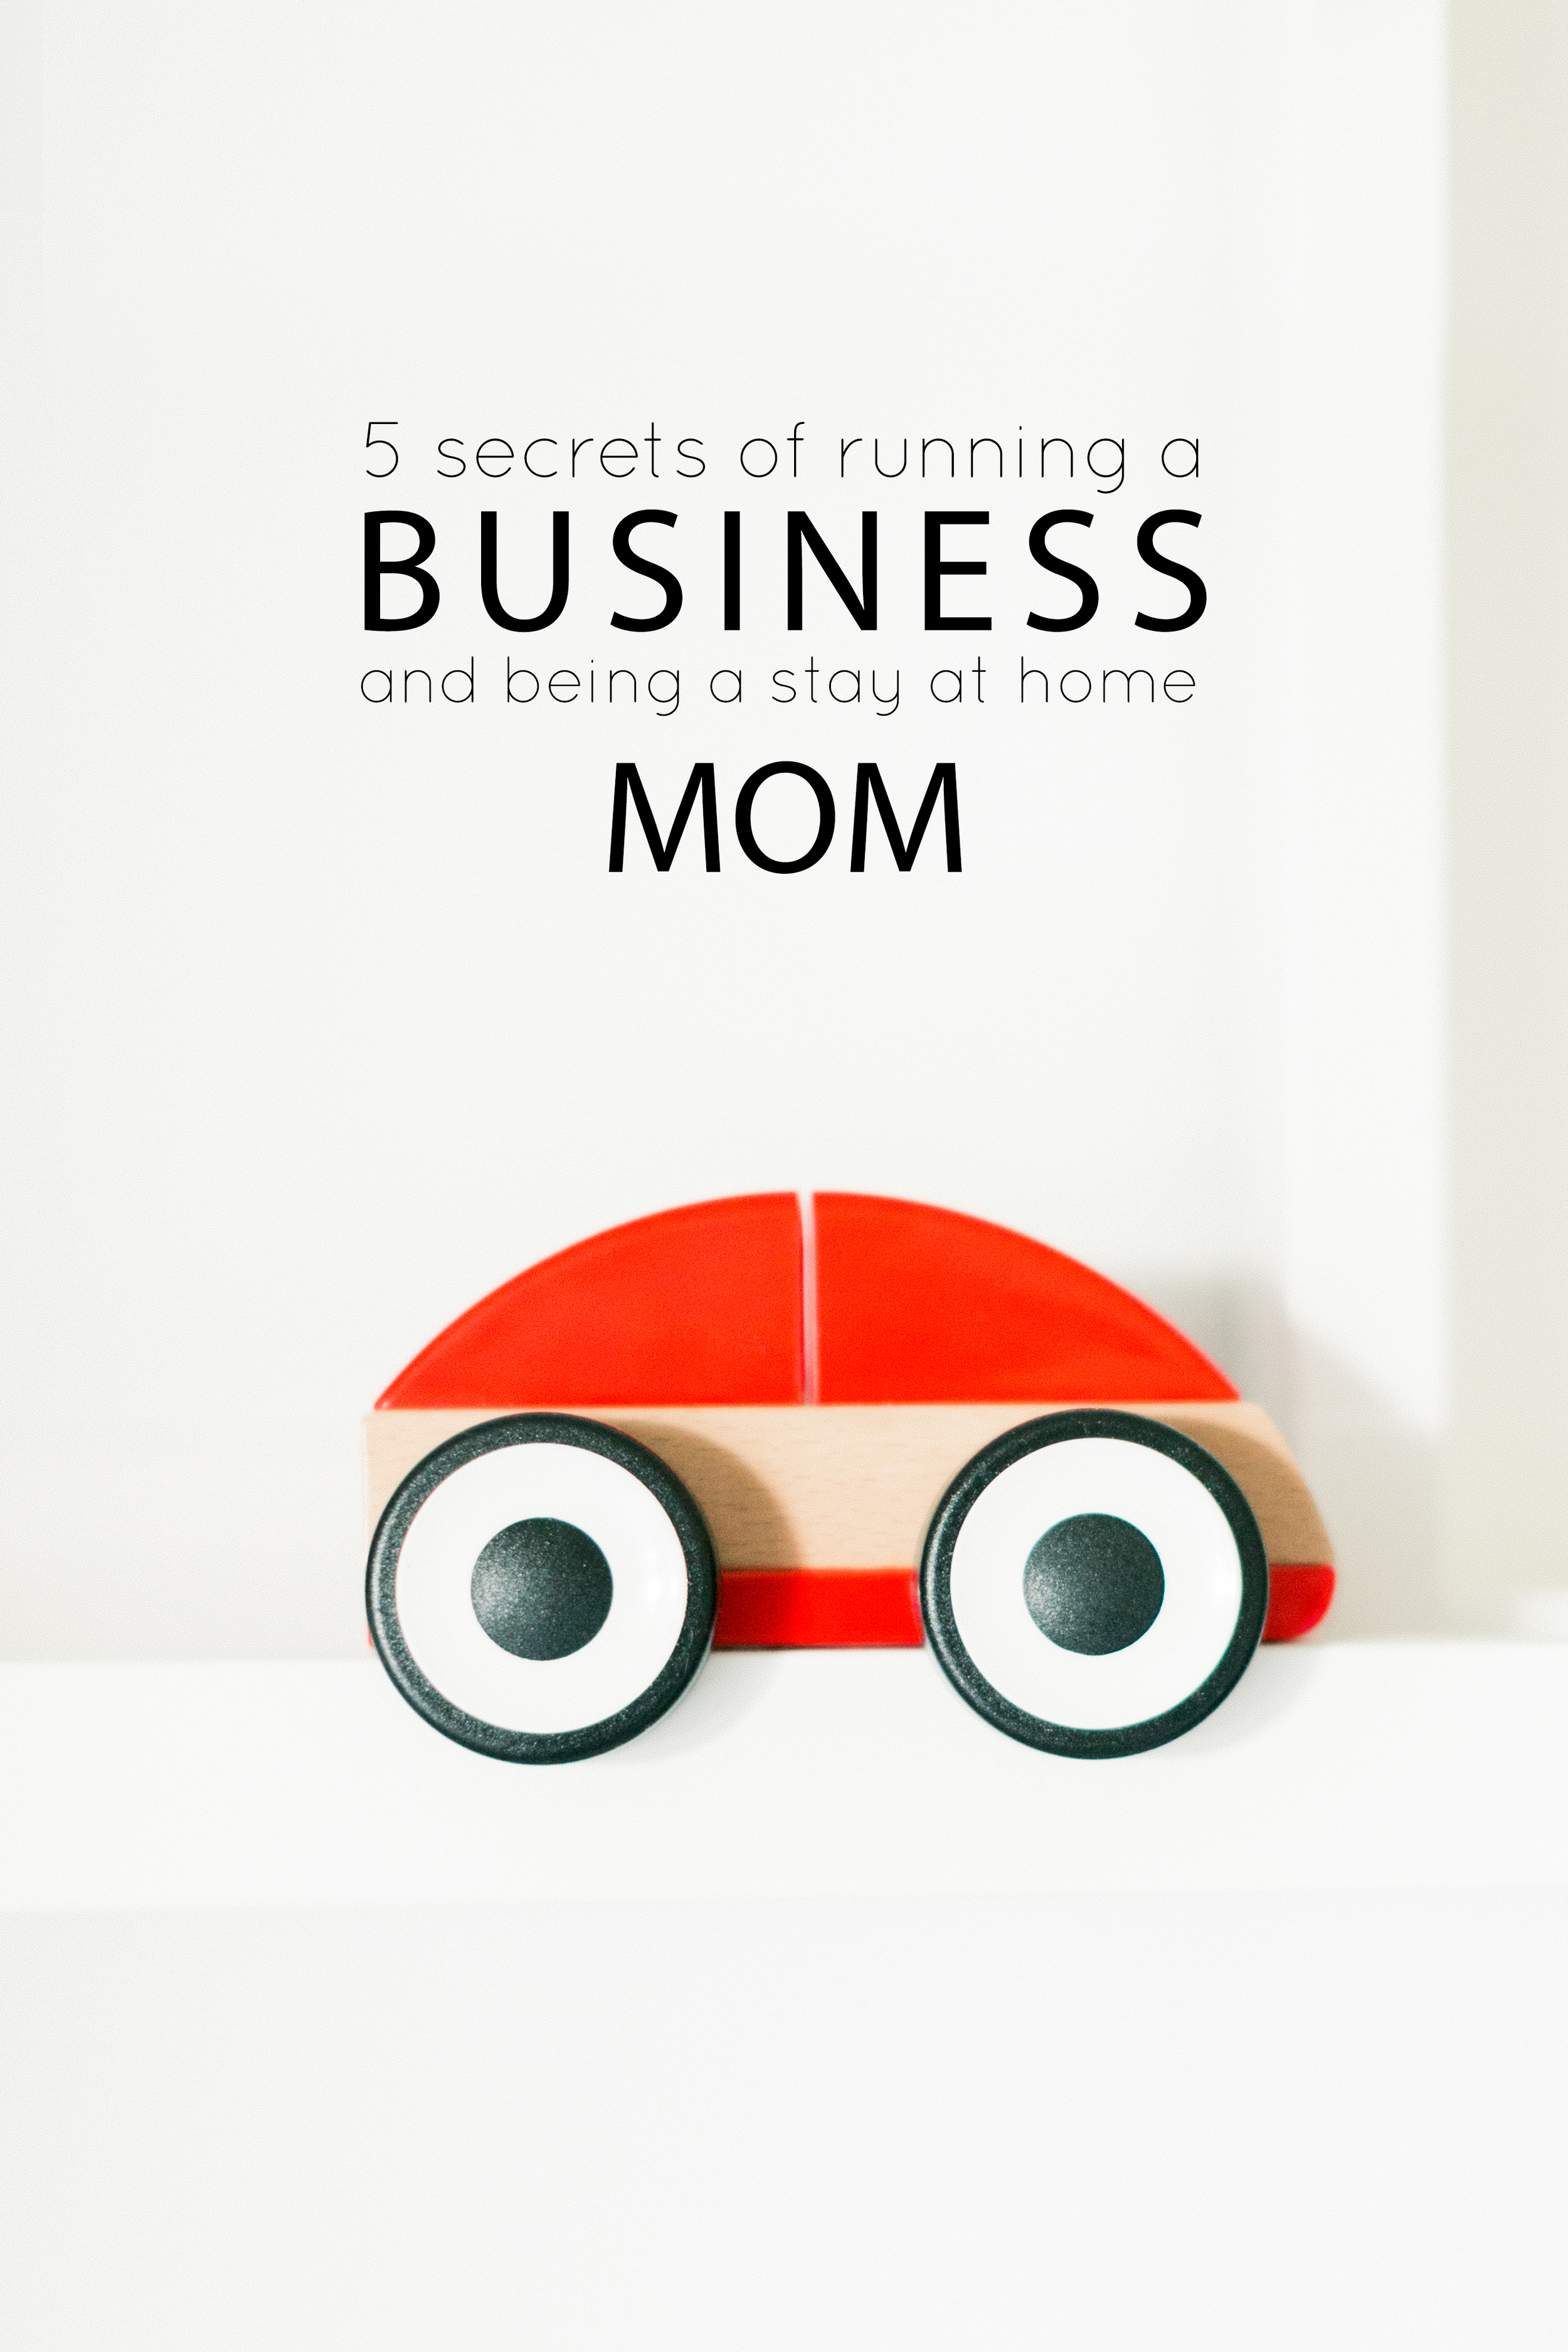 5 Secrets of Running a Business and Being a Stay at Home Mom - The Jordan Brittley Blog